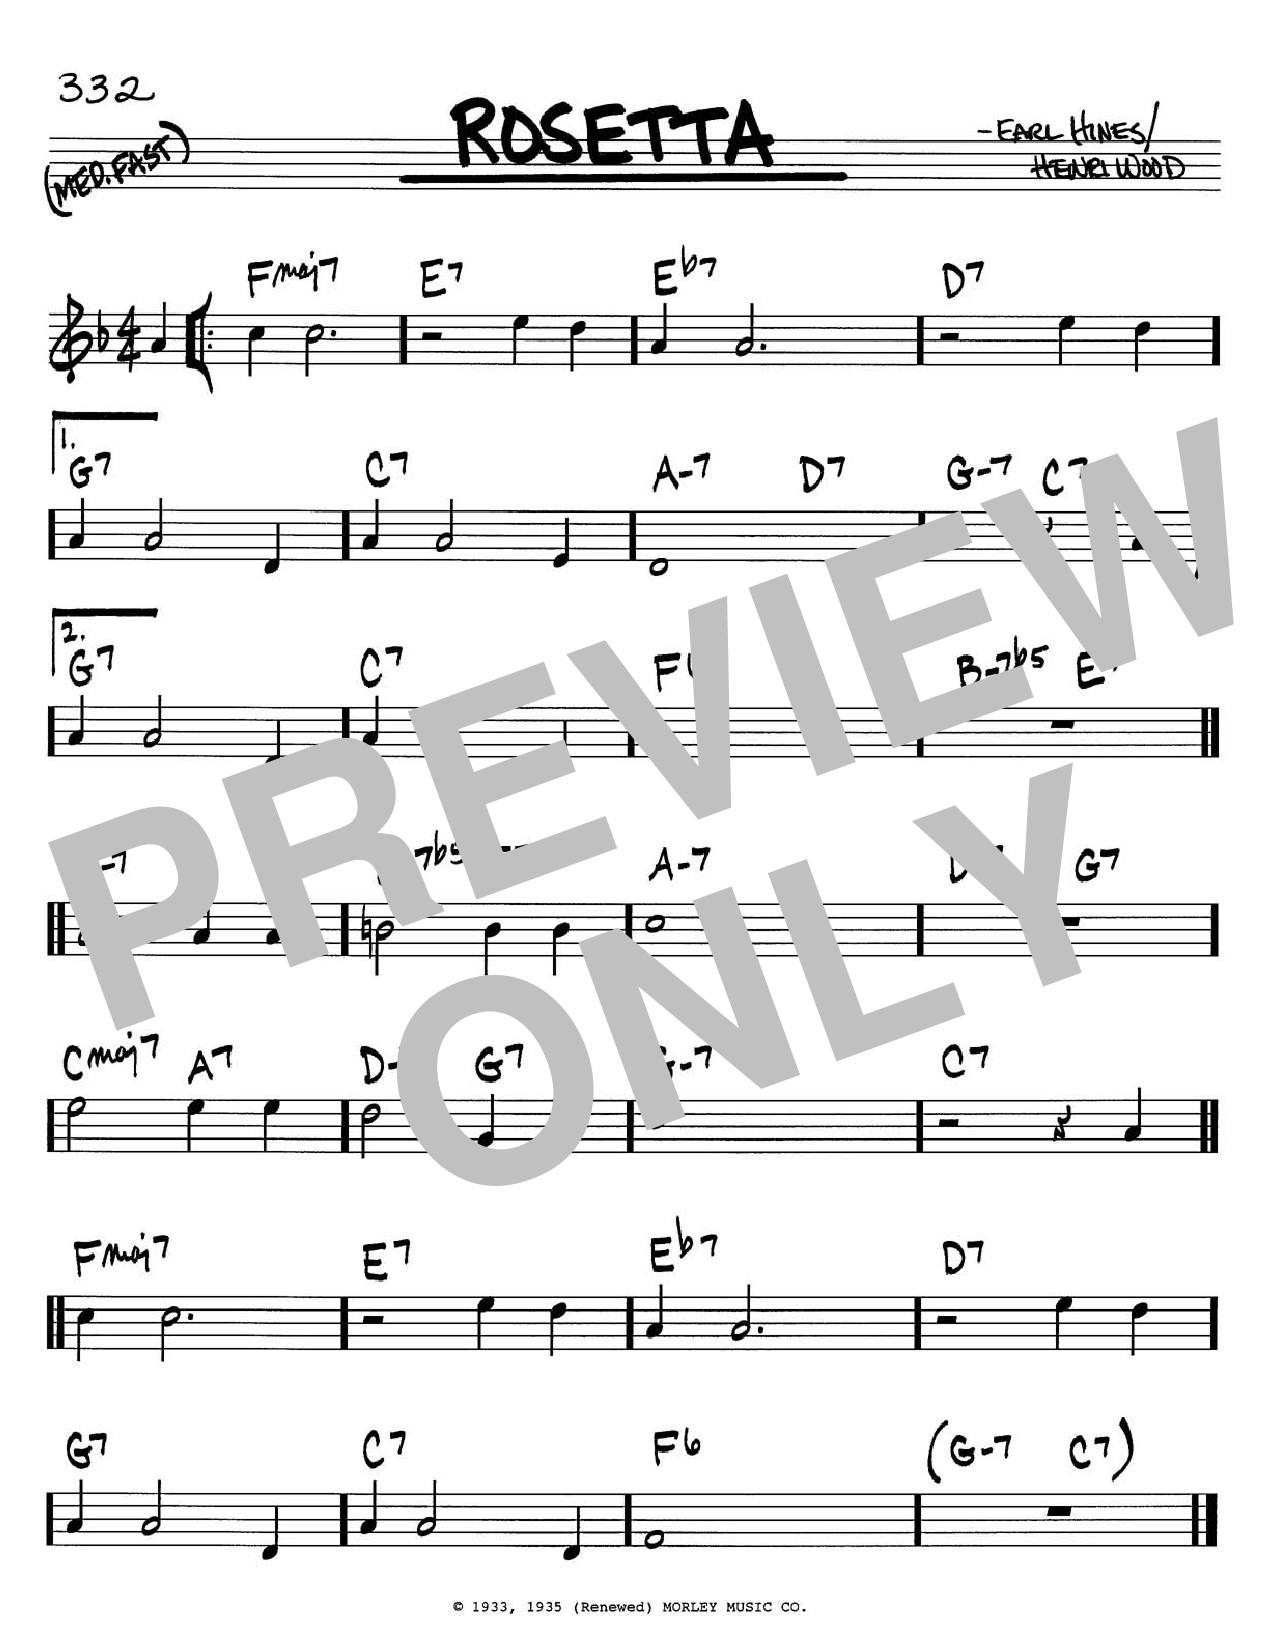 Earl Hines Rosetta sheet music notes and chords